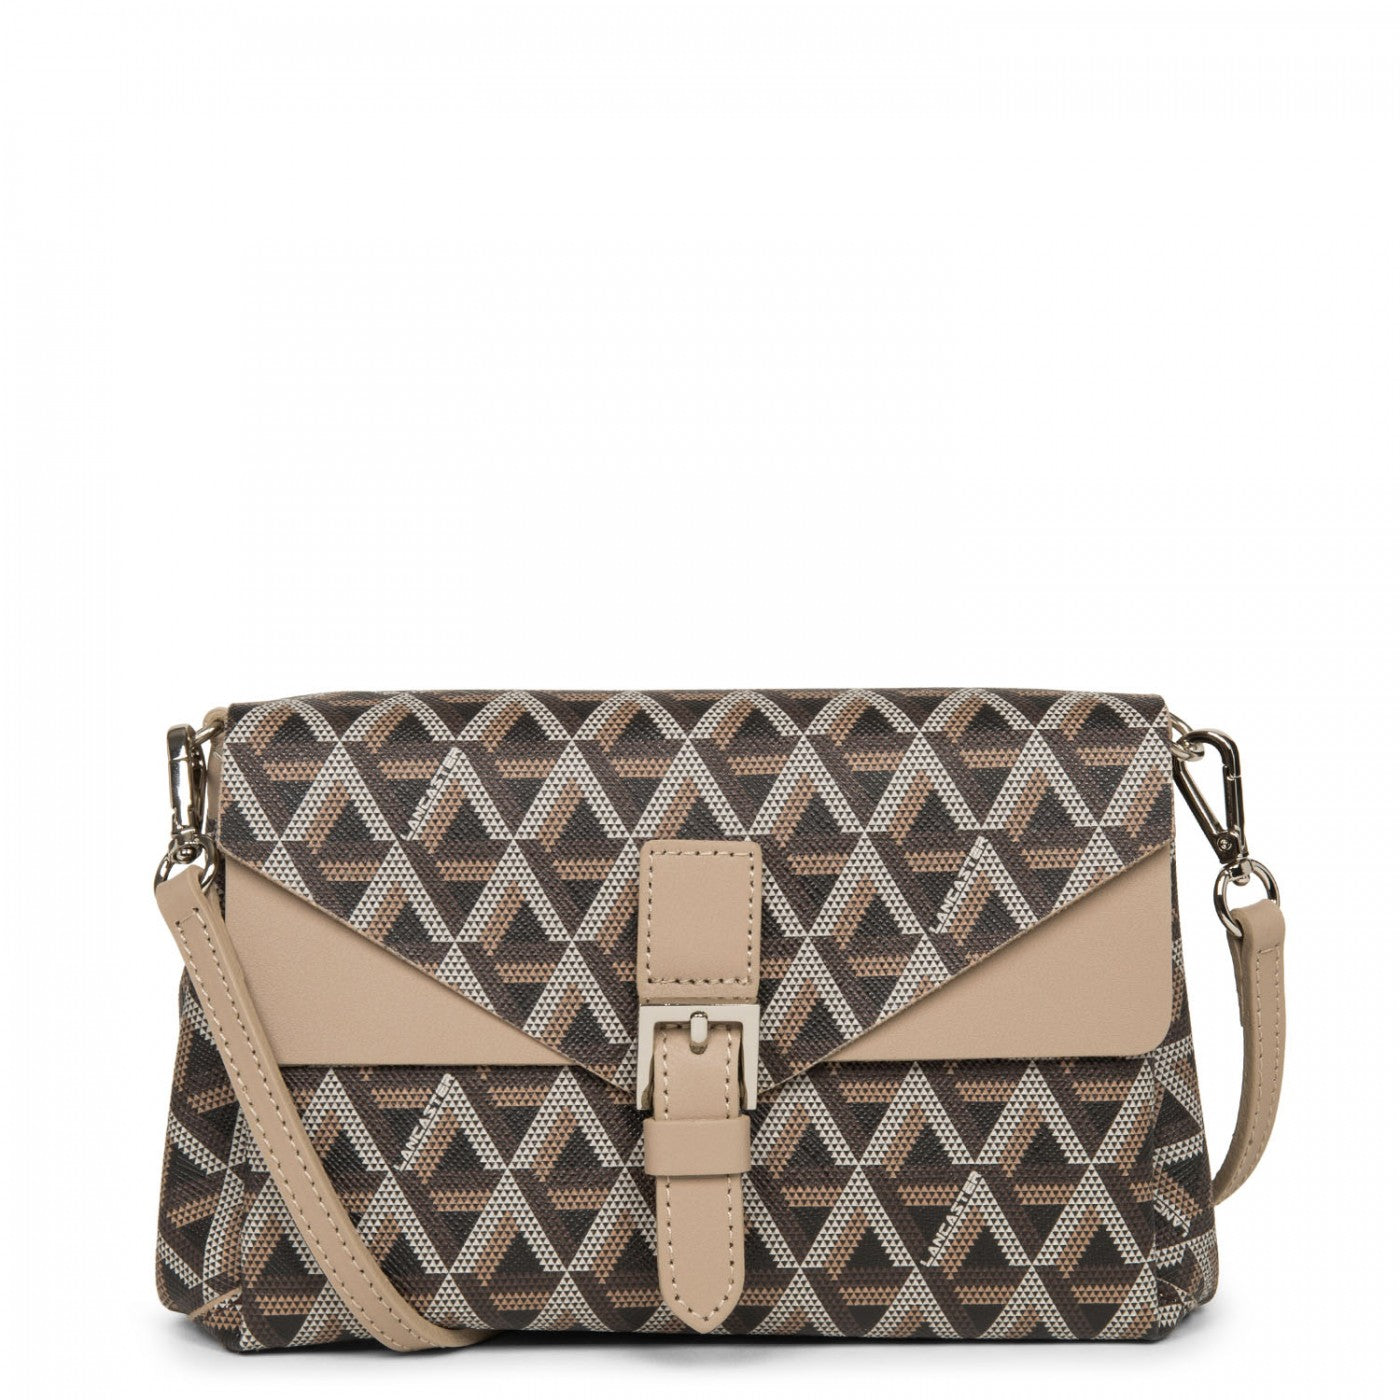 LANCASTER IKON SMALL CROSSBODY BAG - BROWN